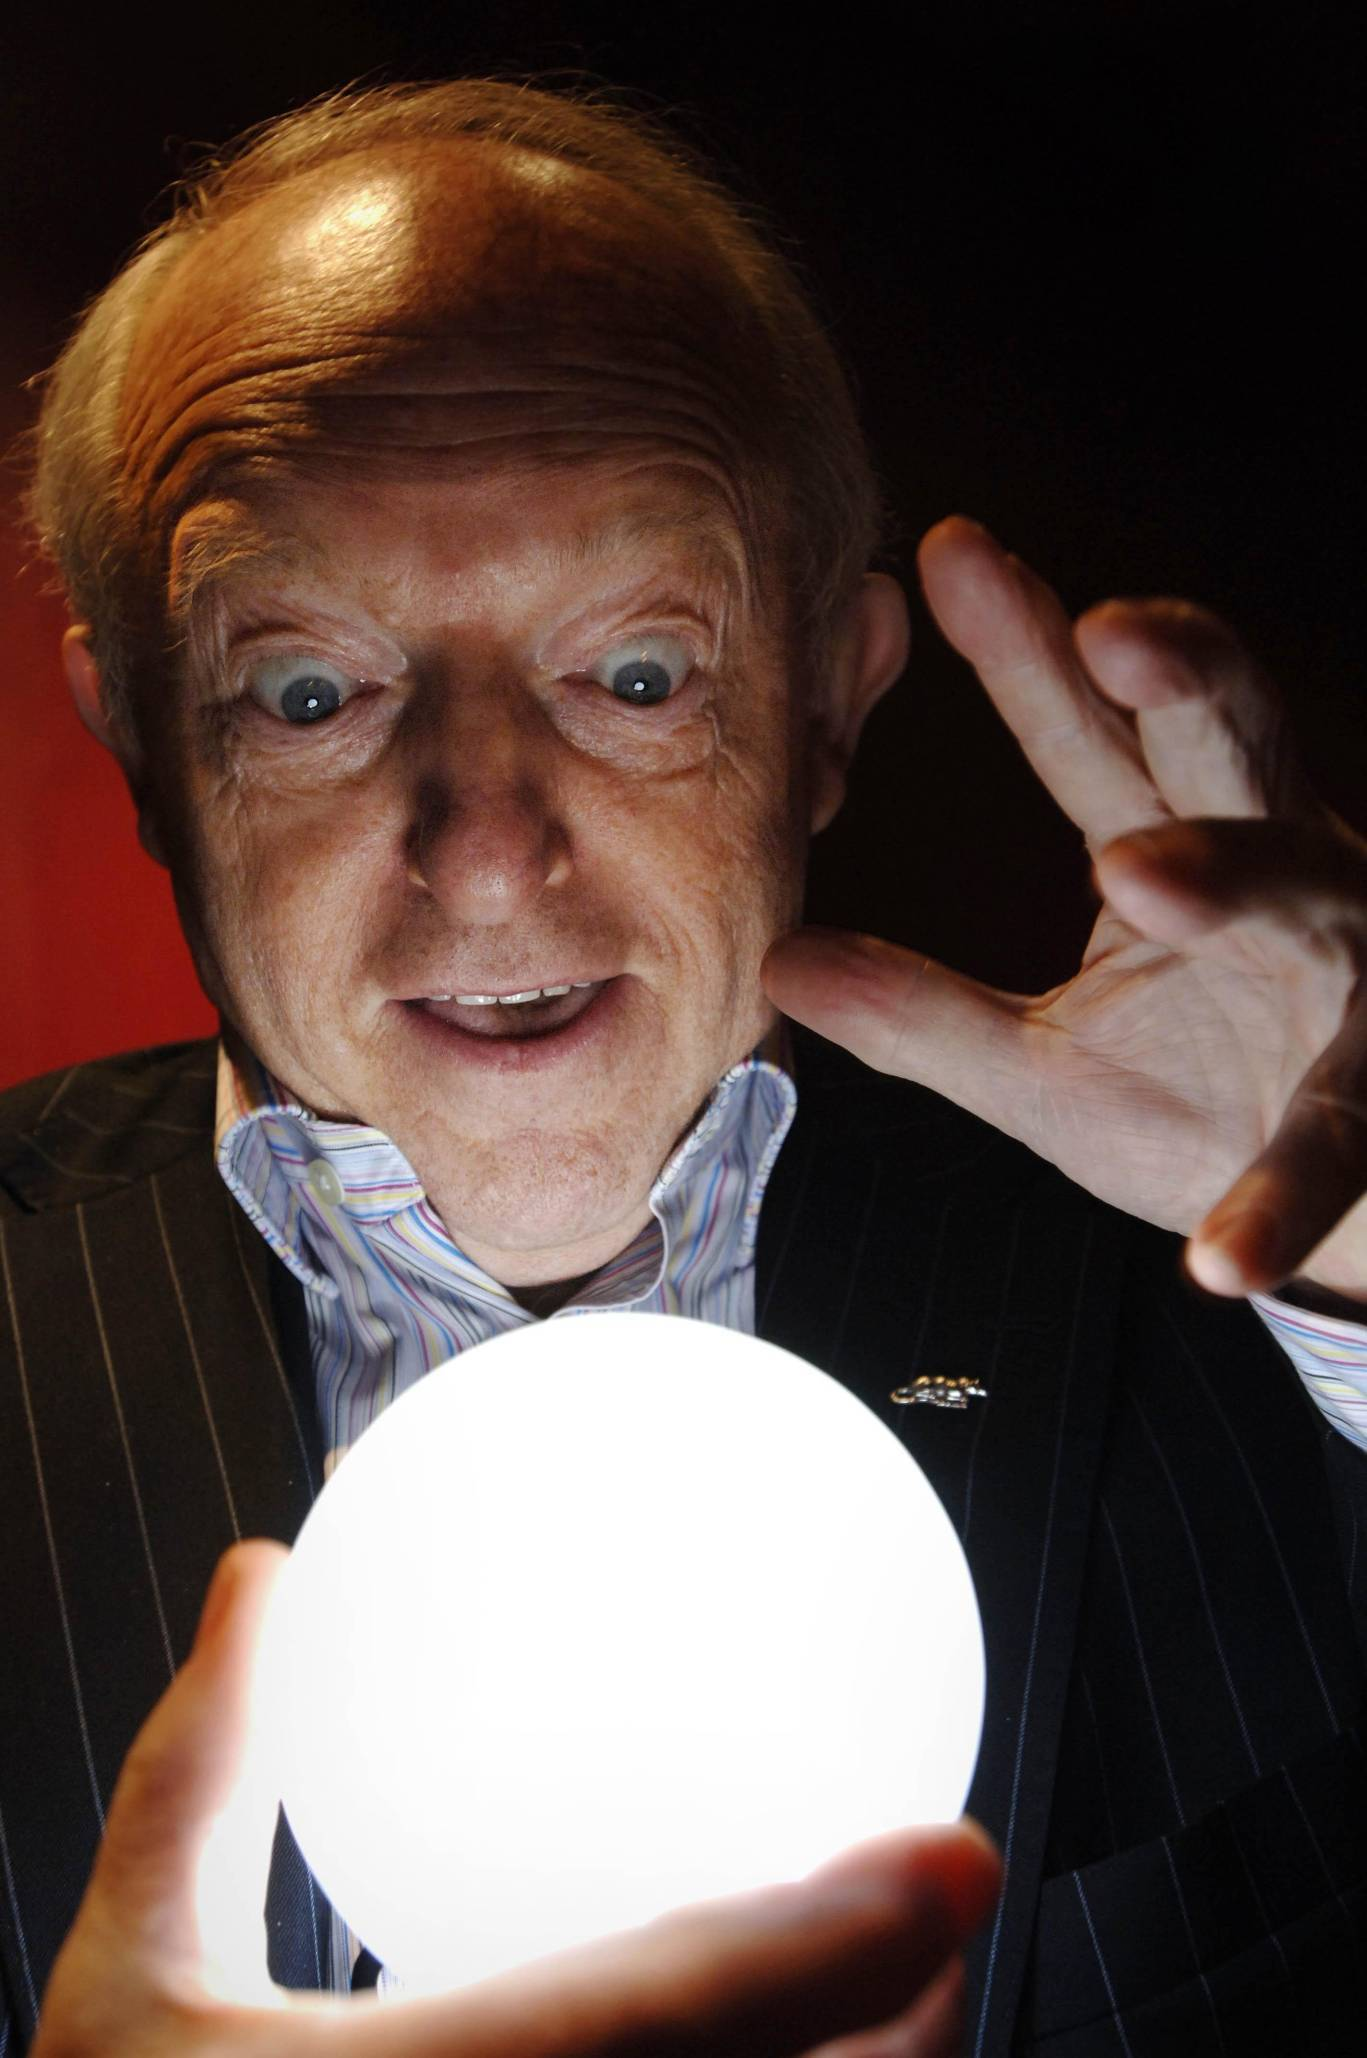 Paul Daniels gazing into a crystal ball at the Special Magician's Screening of The Illusionist.